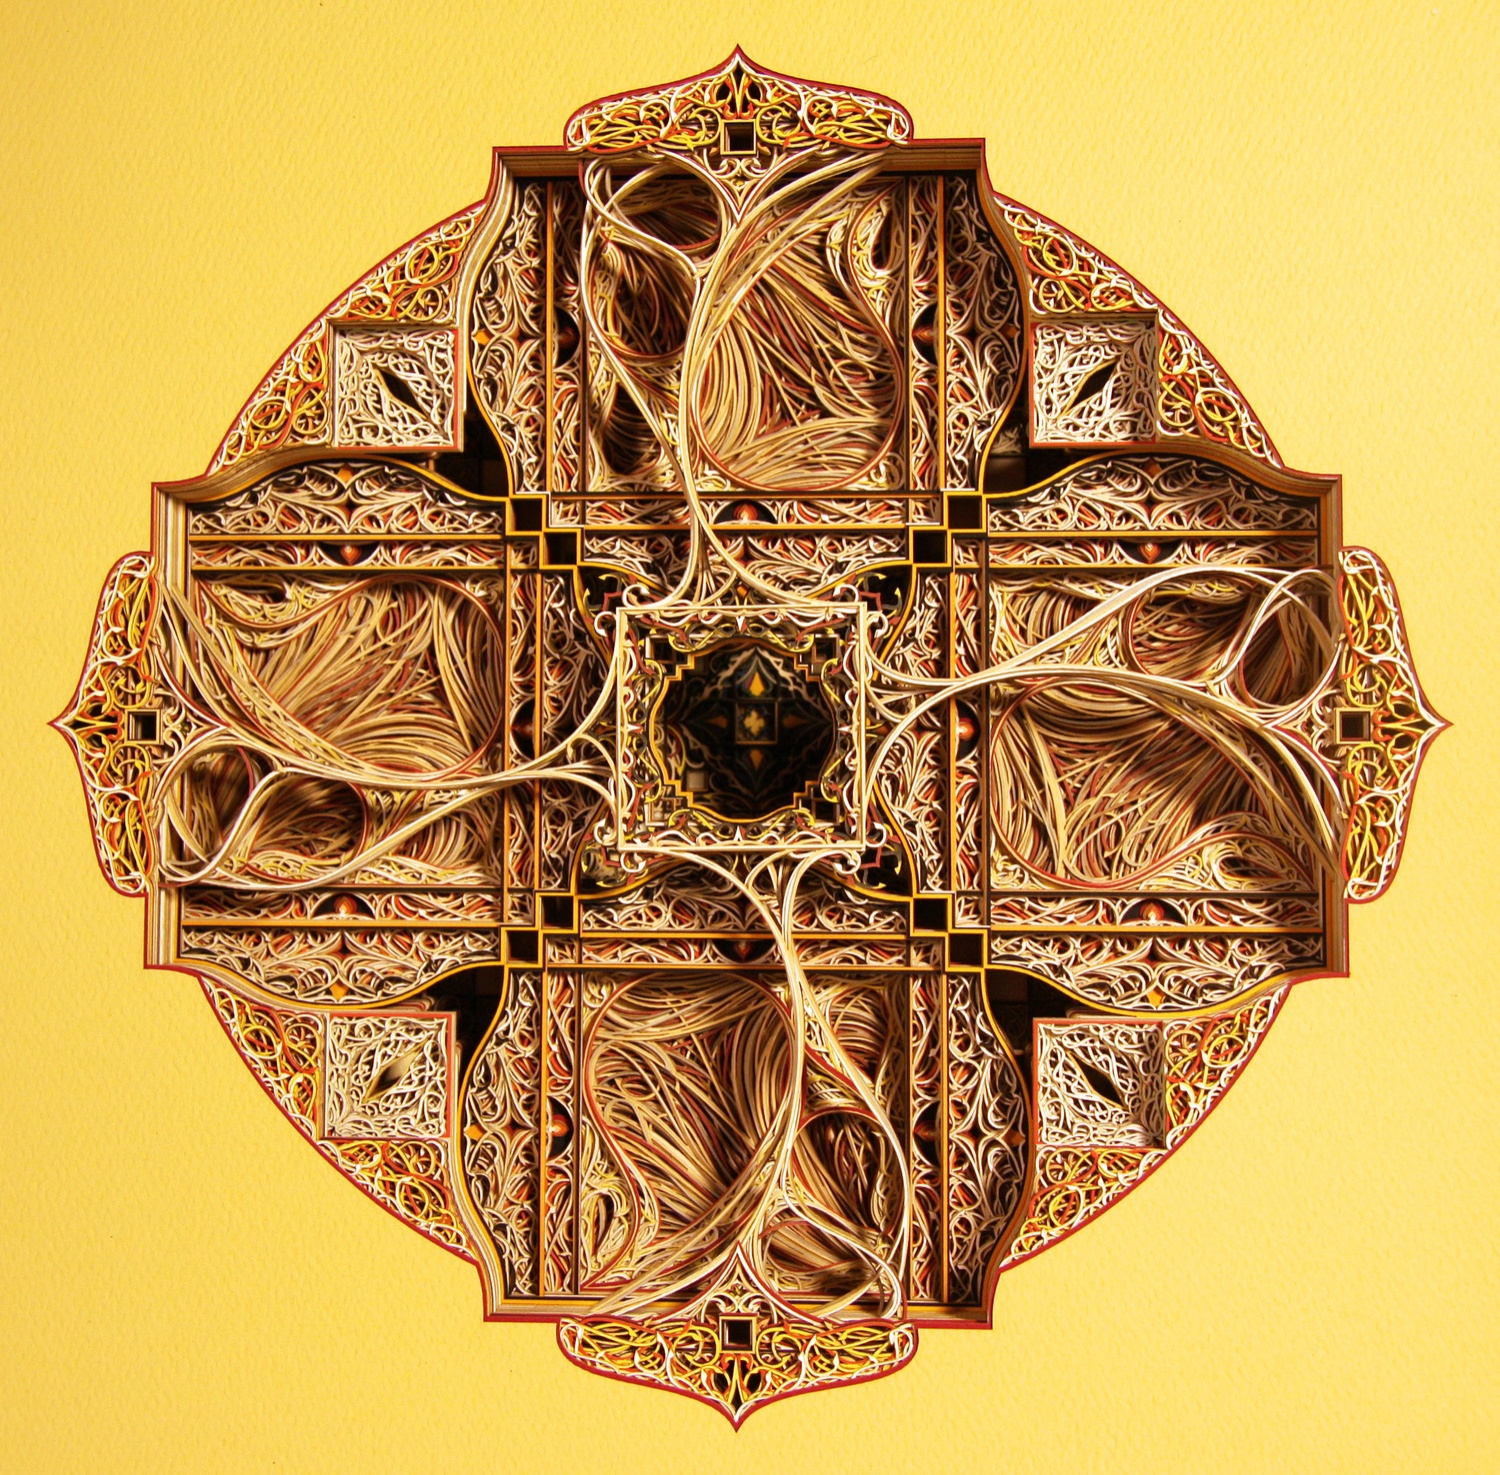 intricate-stained-glass-windows-colorful-laser-cut-paper-eric-standley-either-or-delta-strictlypaper_01